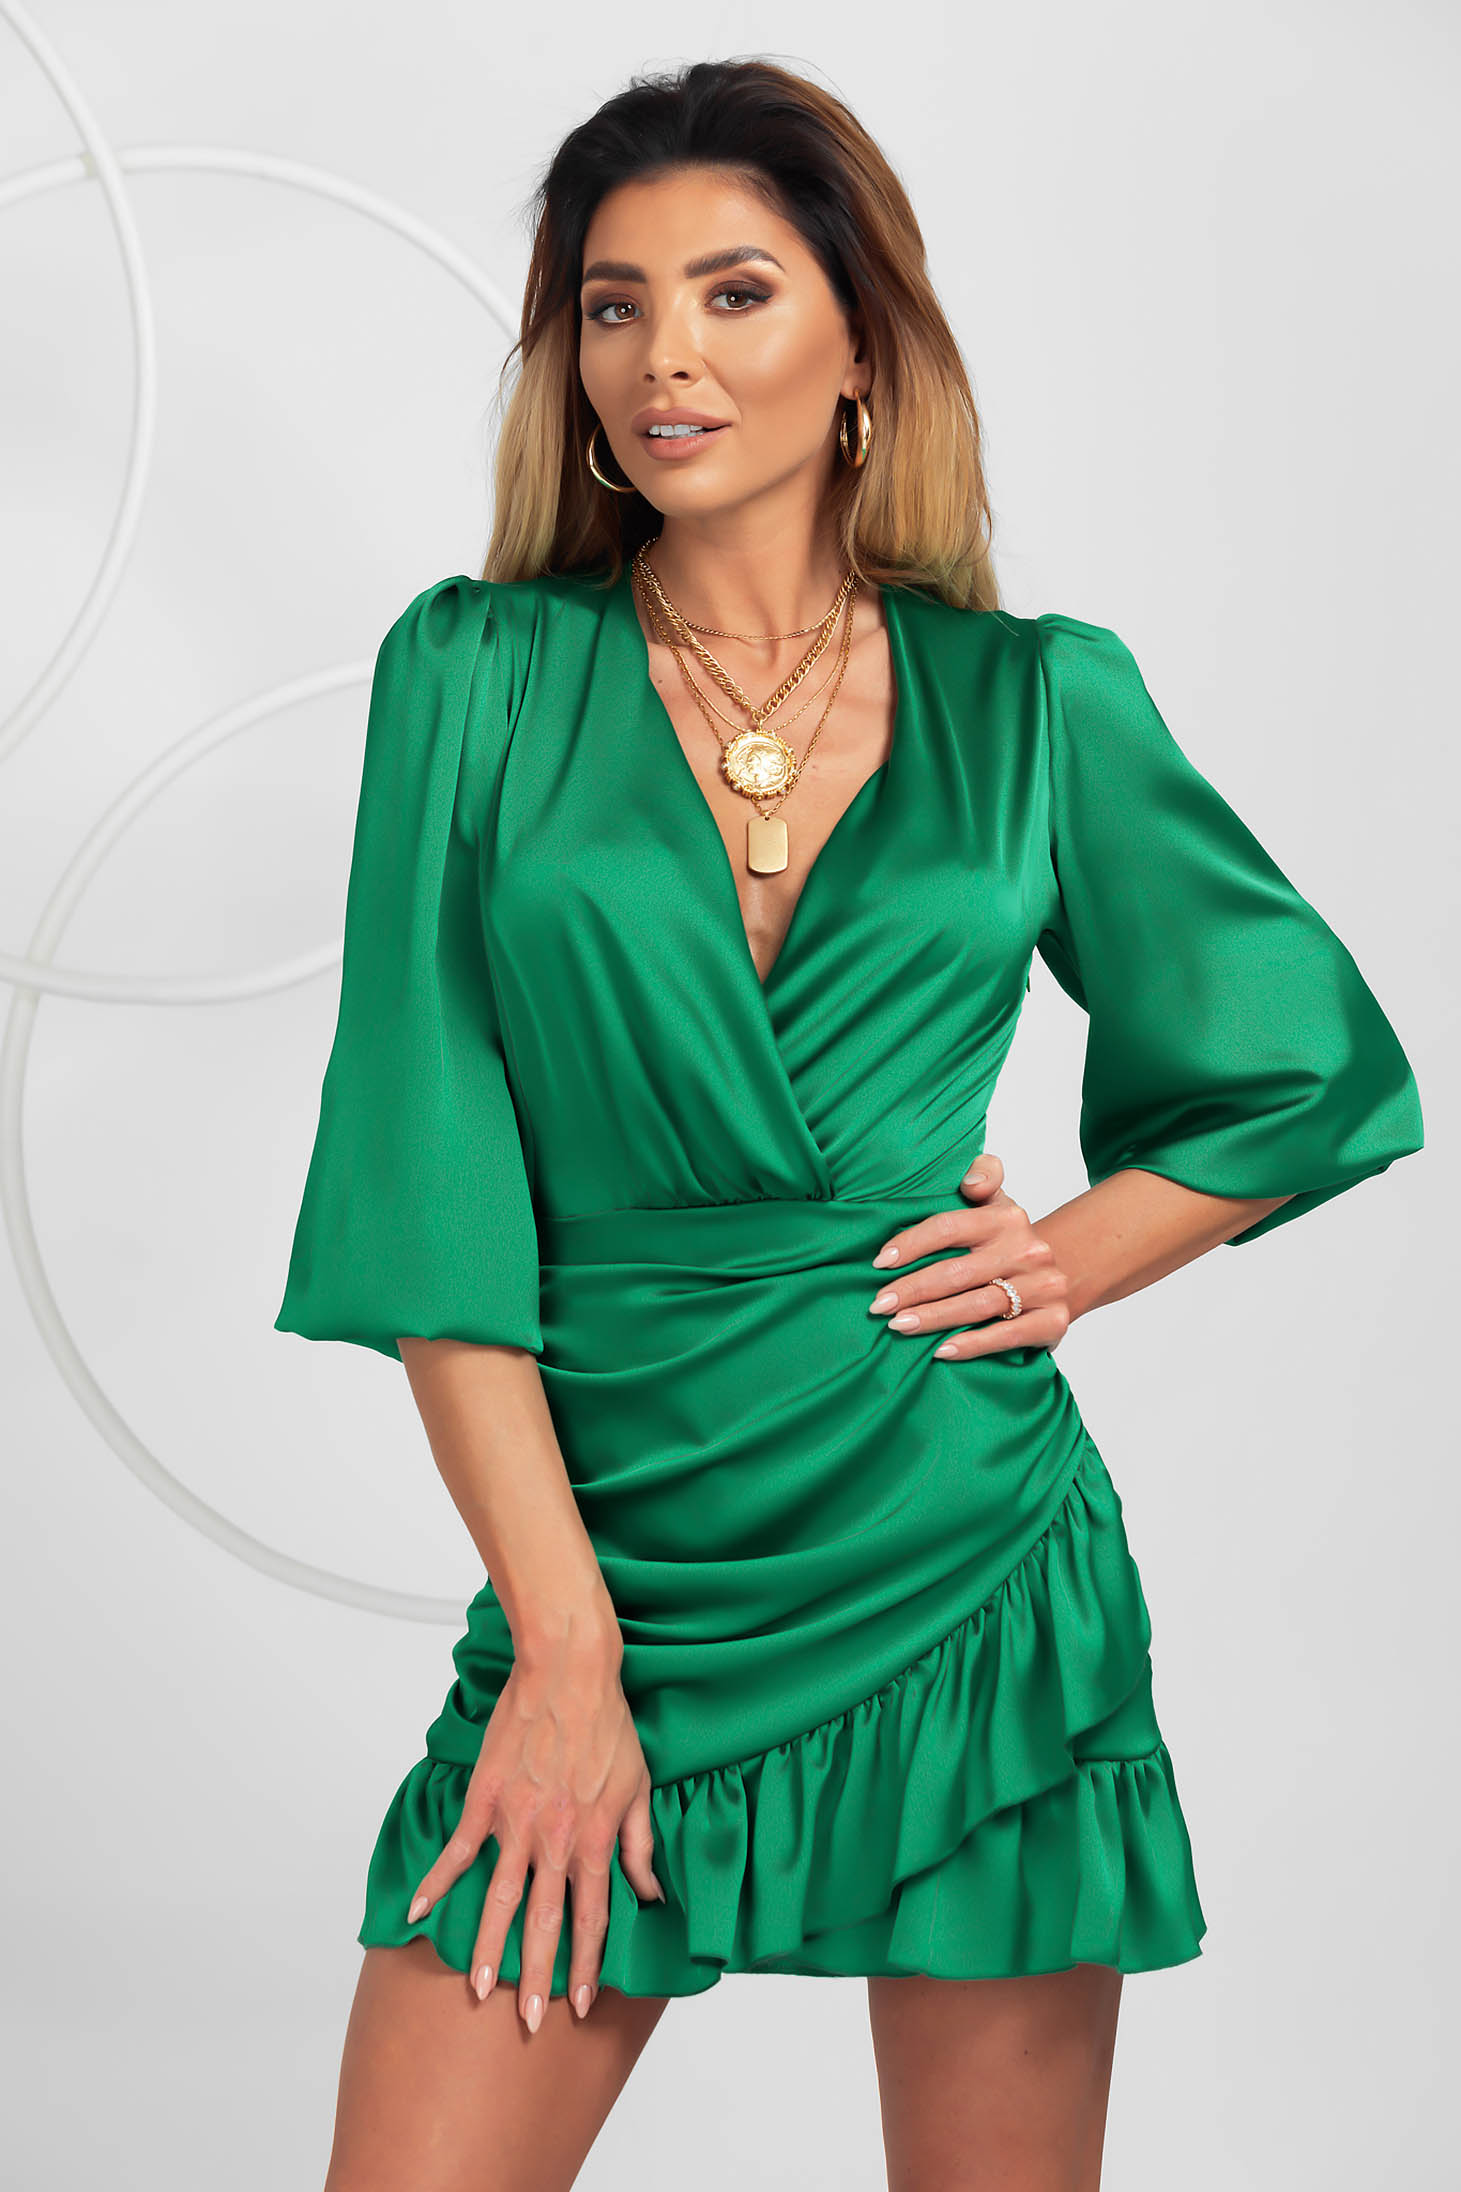 Green dress from satin clubbing wrap over front with ruffle details